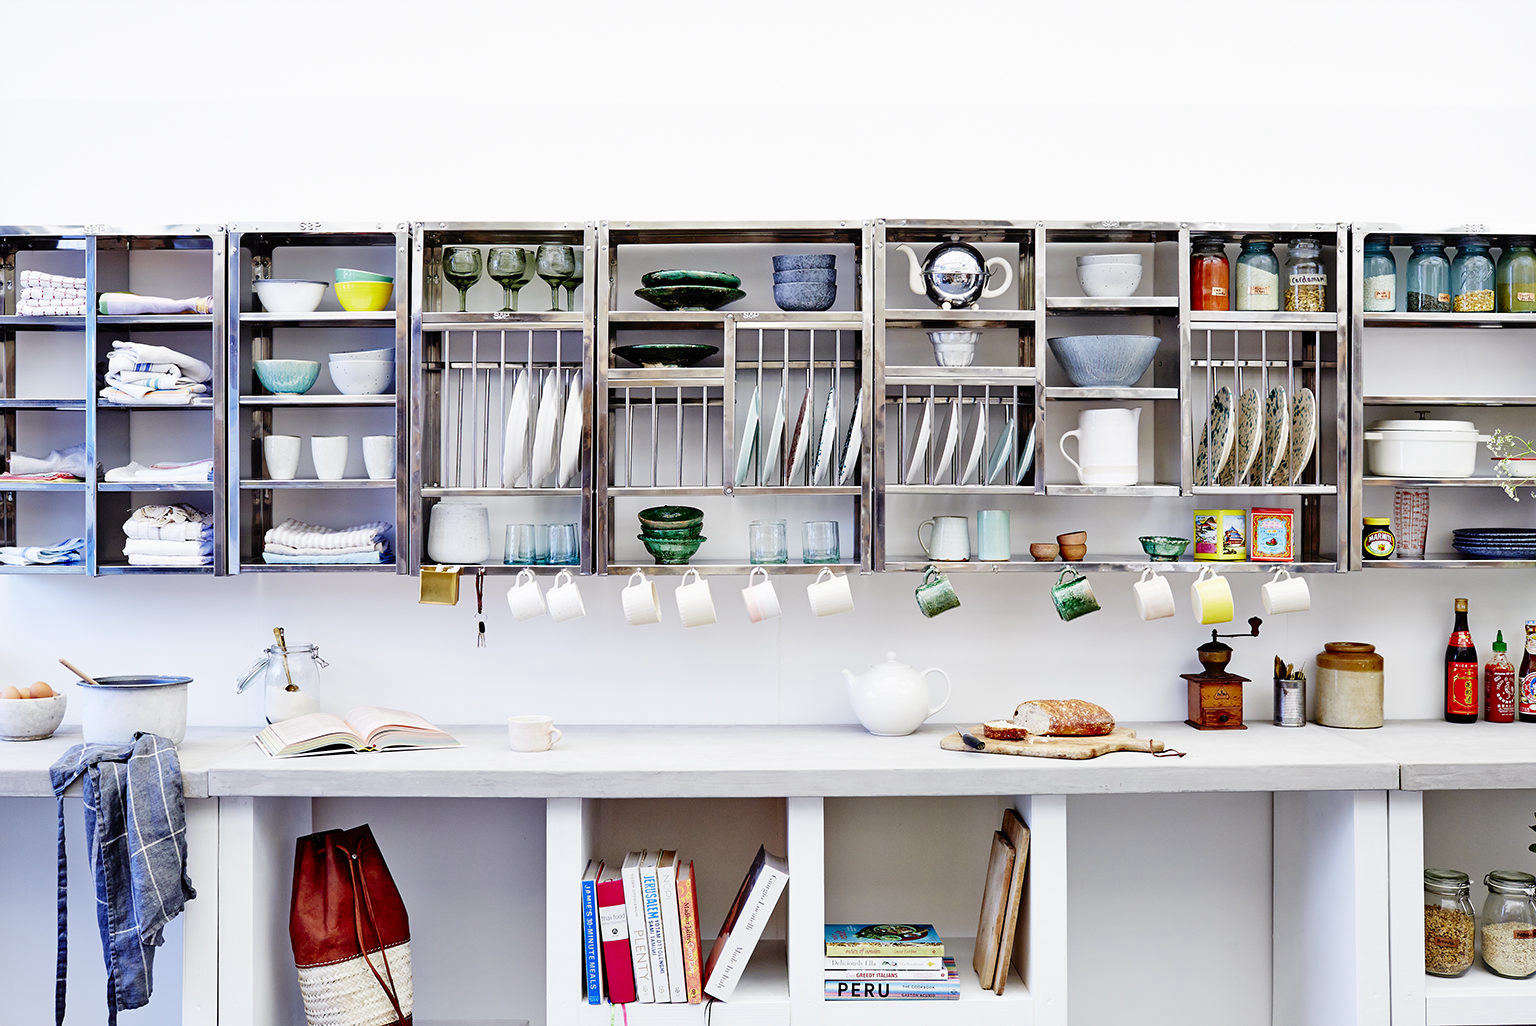 kitchen racks lowes cabinet handles indian stainless steel dish and shelves from stovold pogue rack shelf grouping